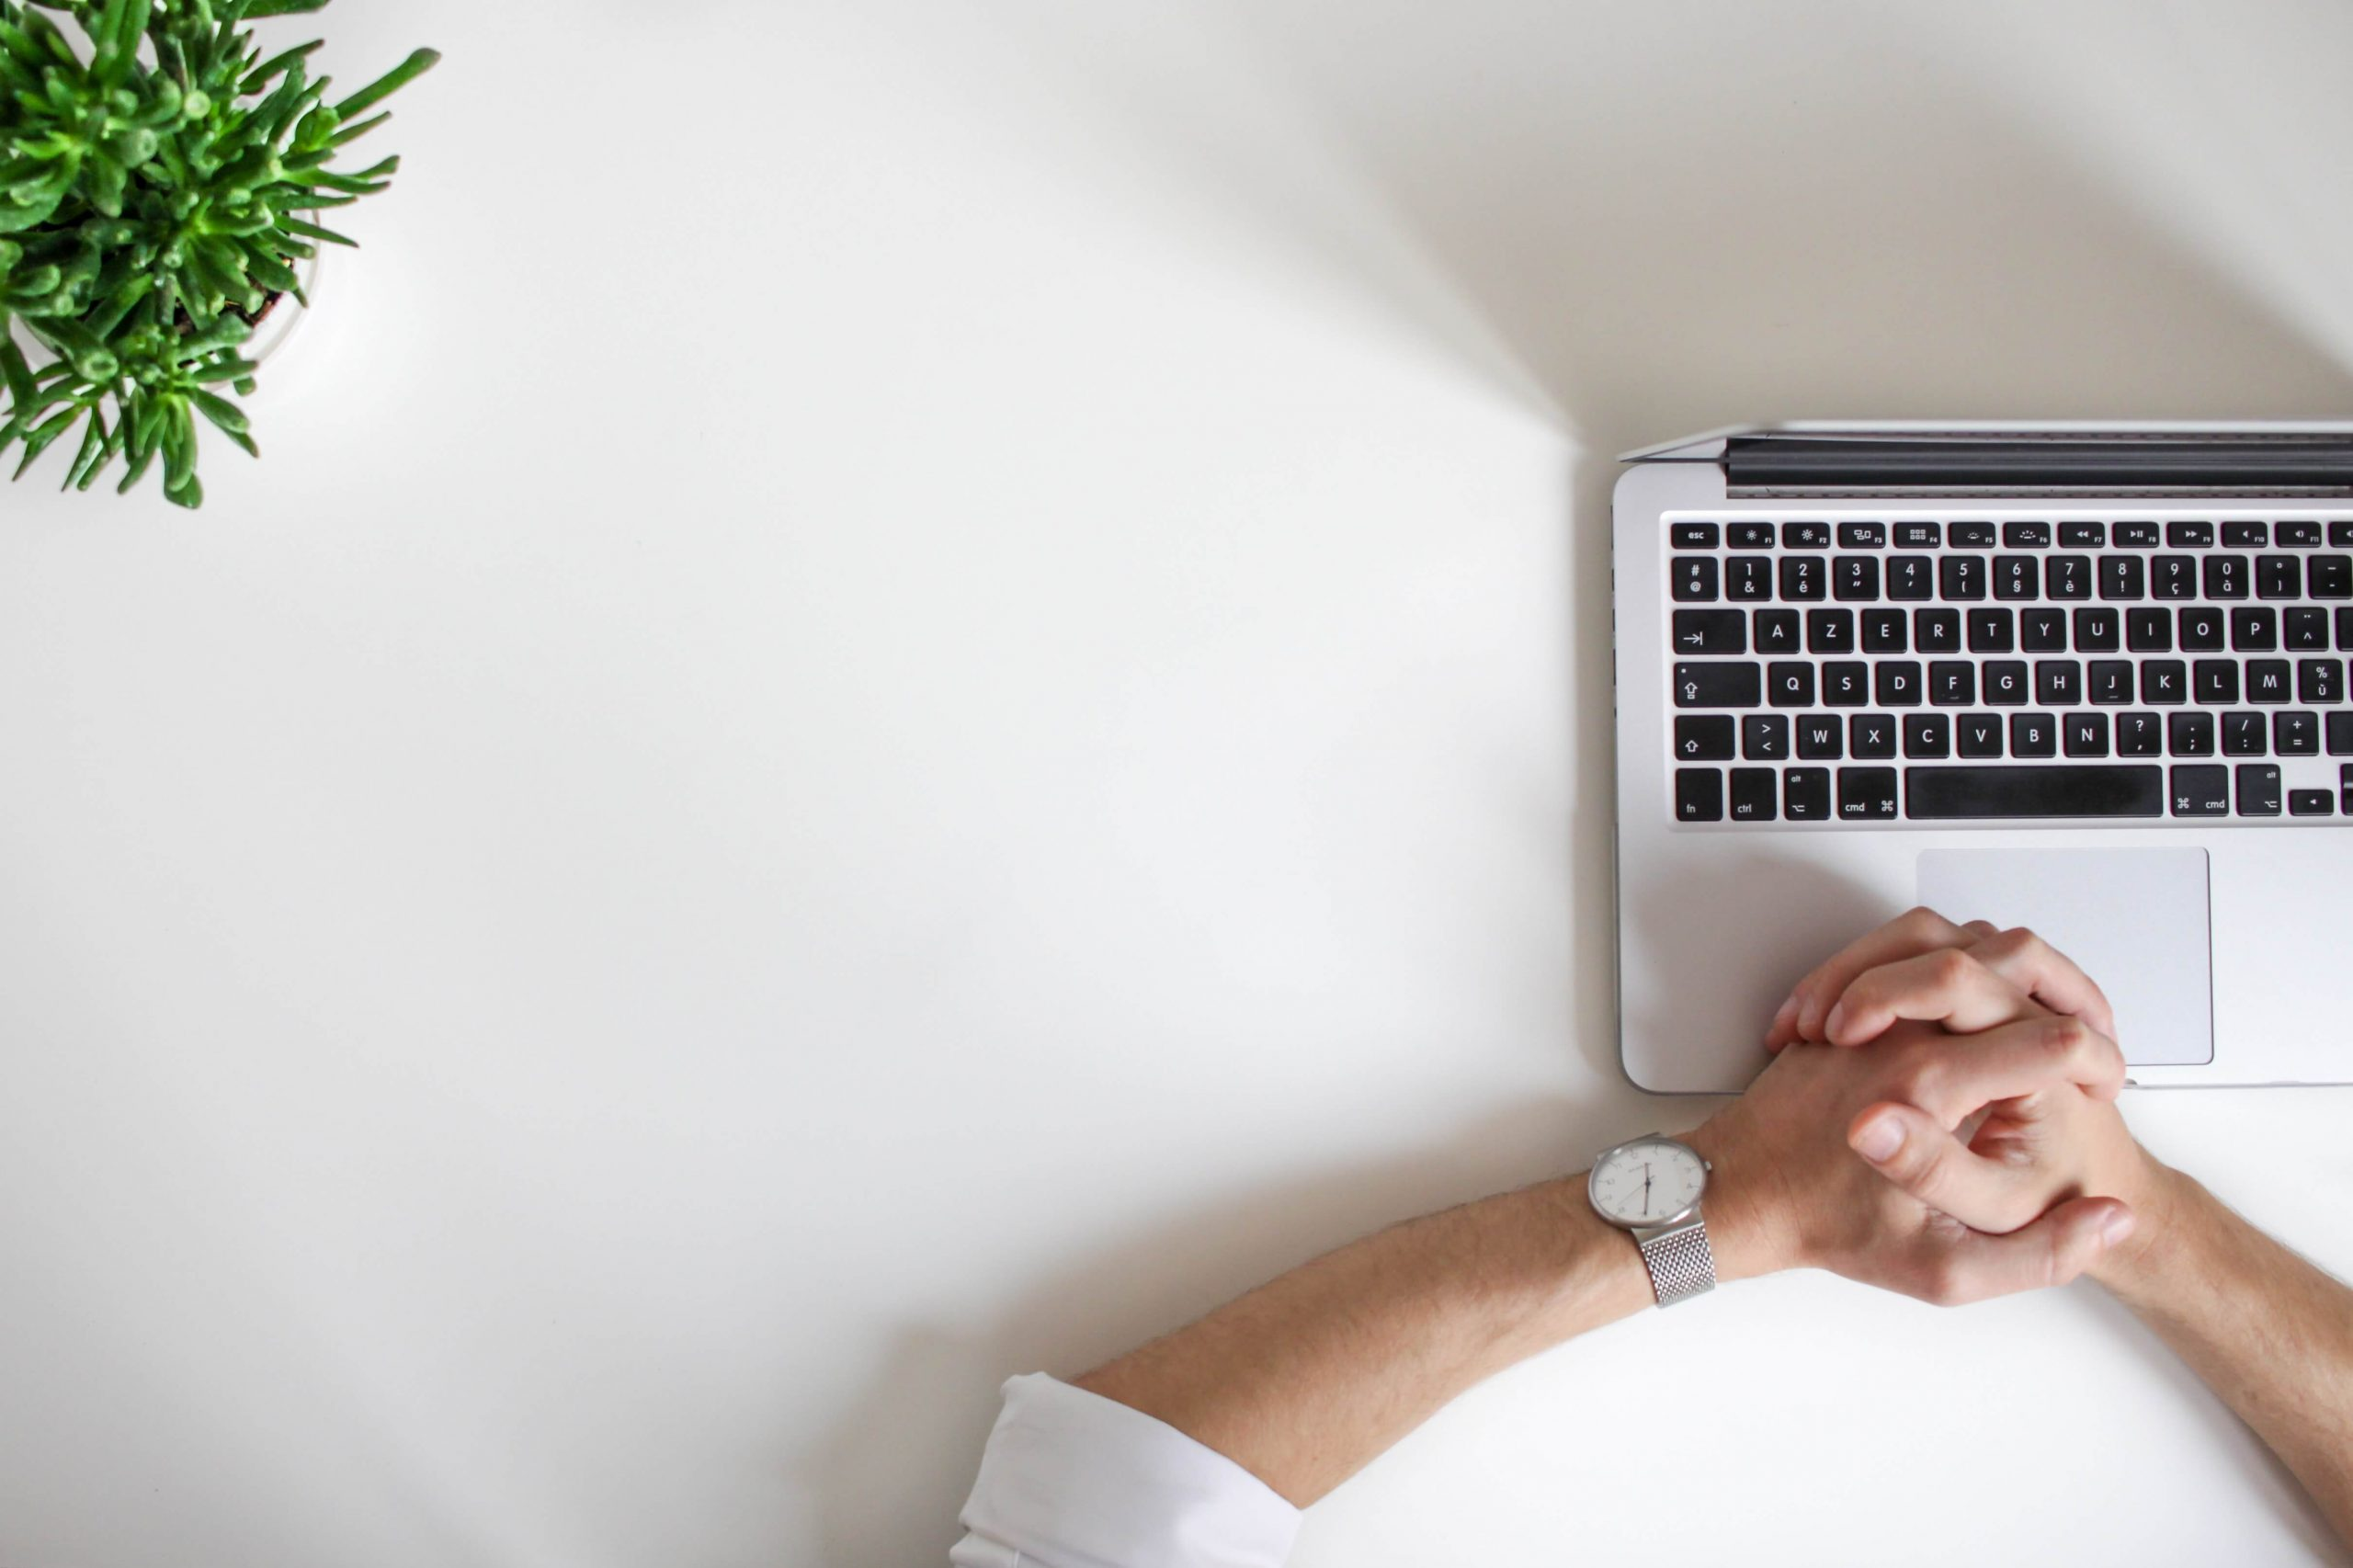 Man working on laptop on white desk with plant